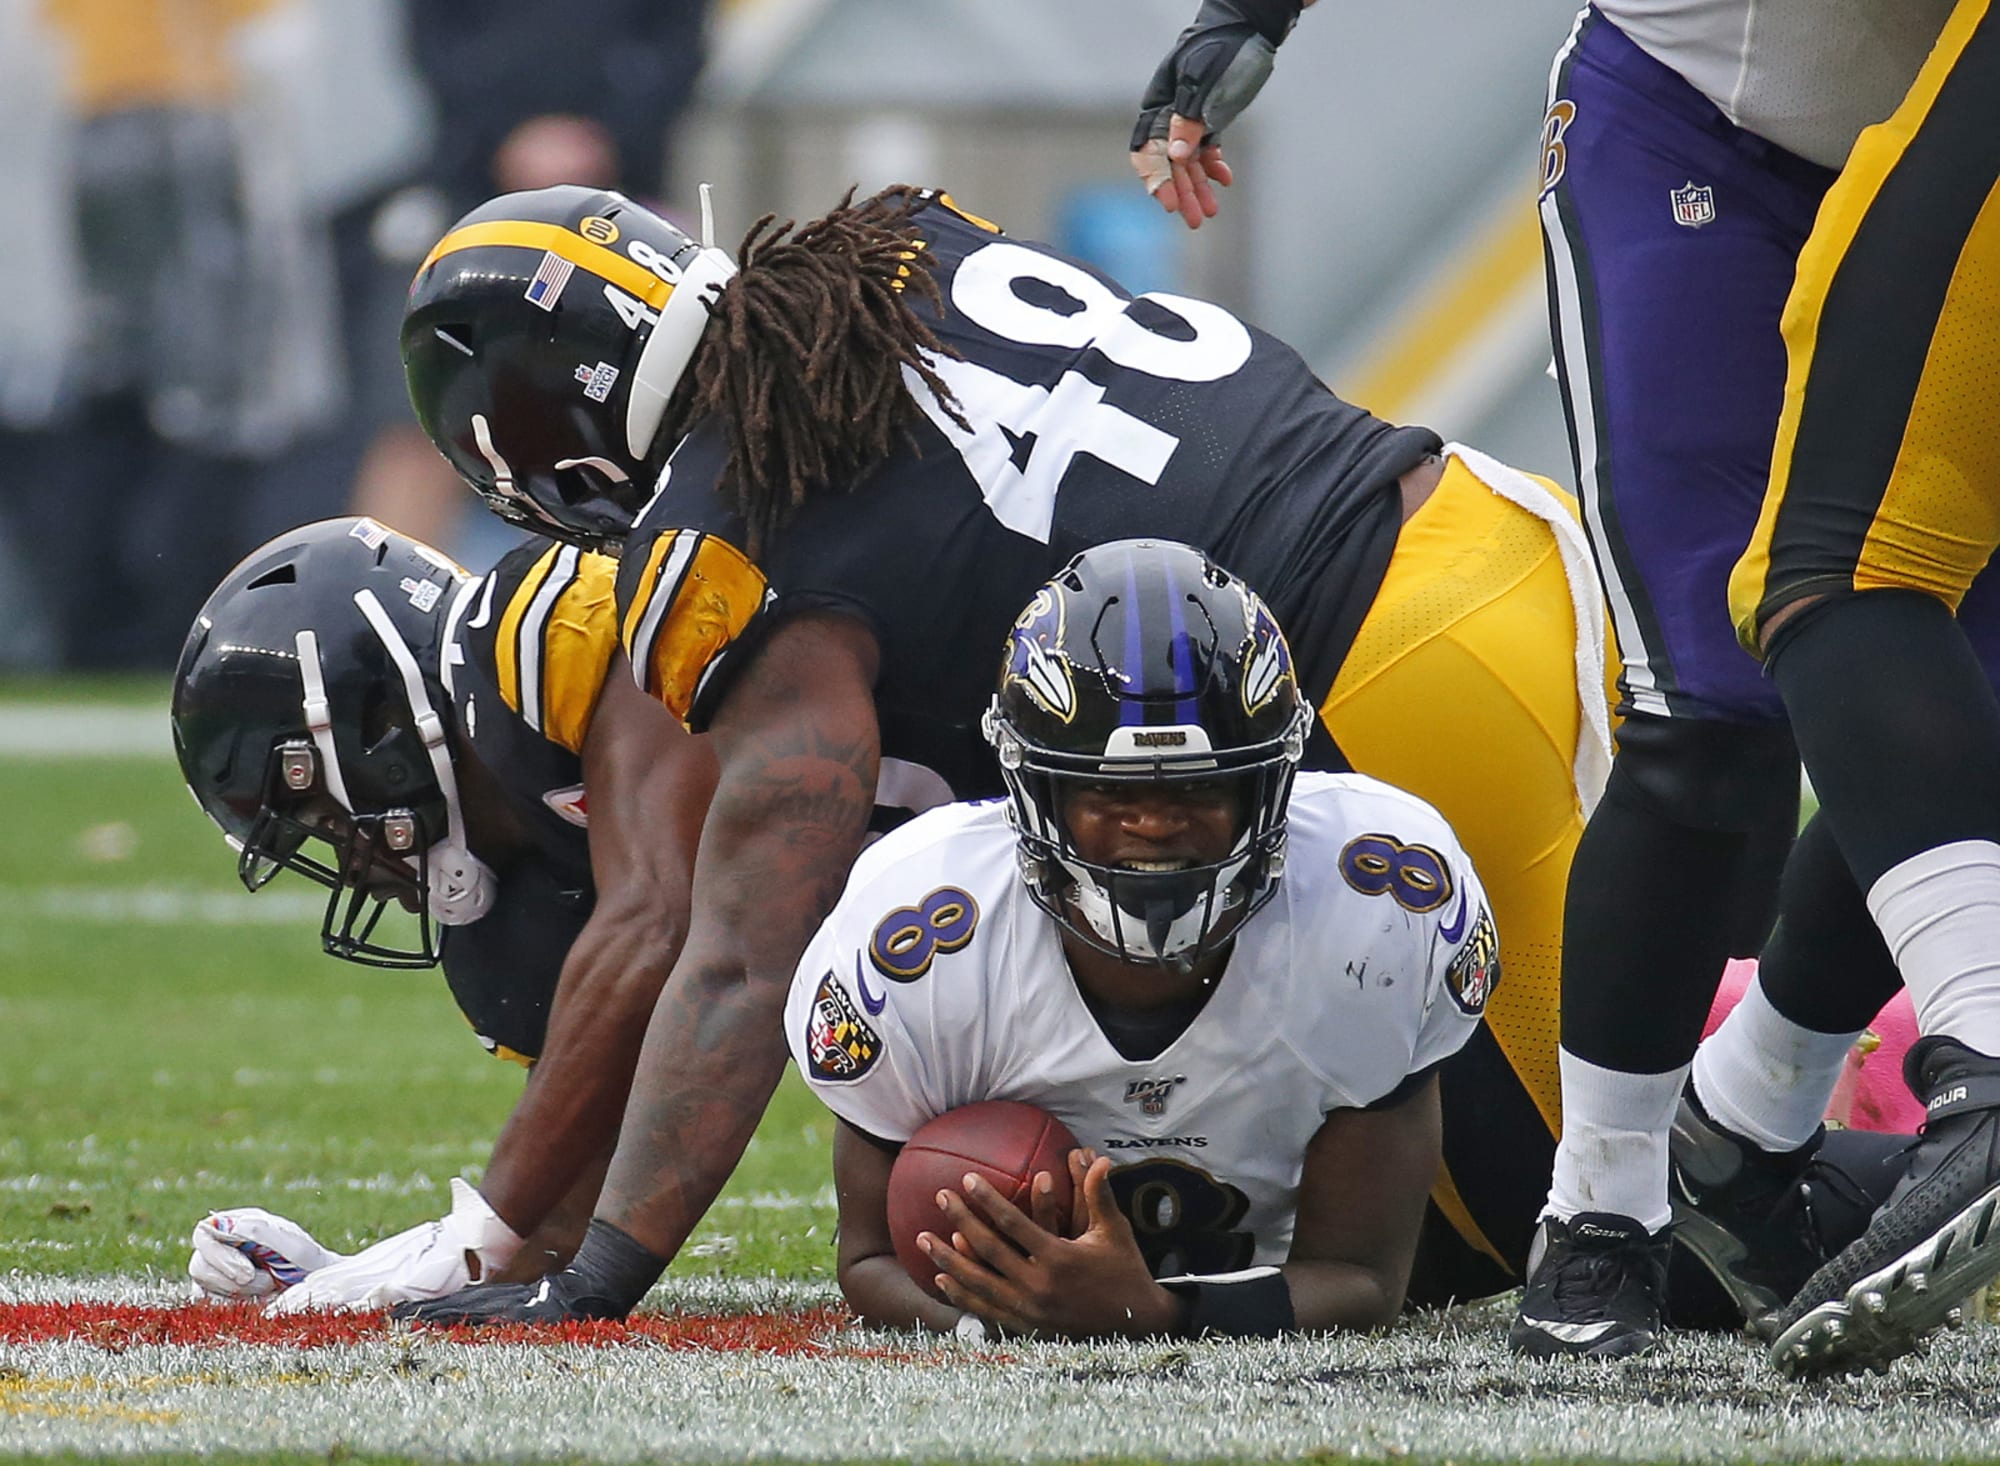 Can the Steelers truly compete with the Ravens in 2020?